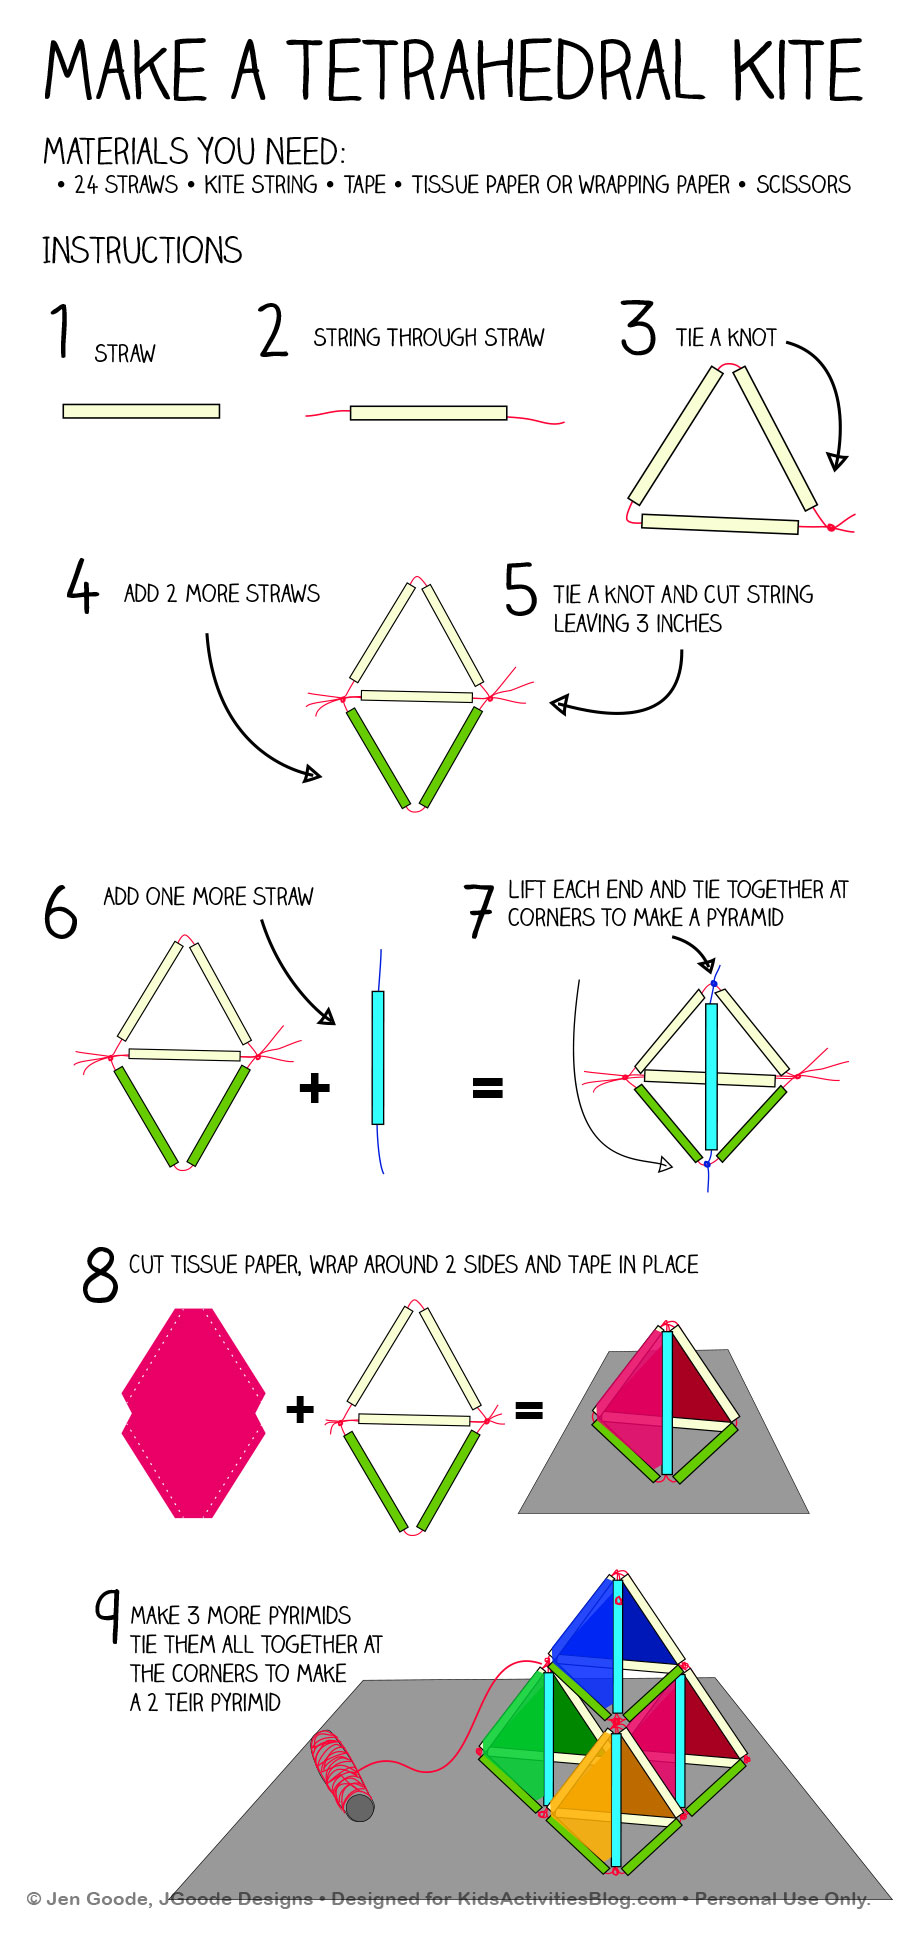 Make a Tetrahedral Kite Printable